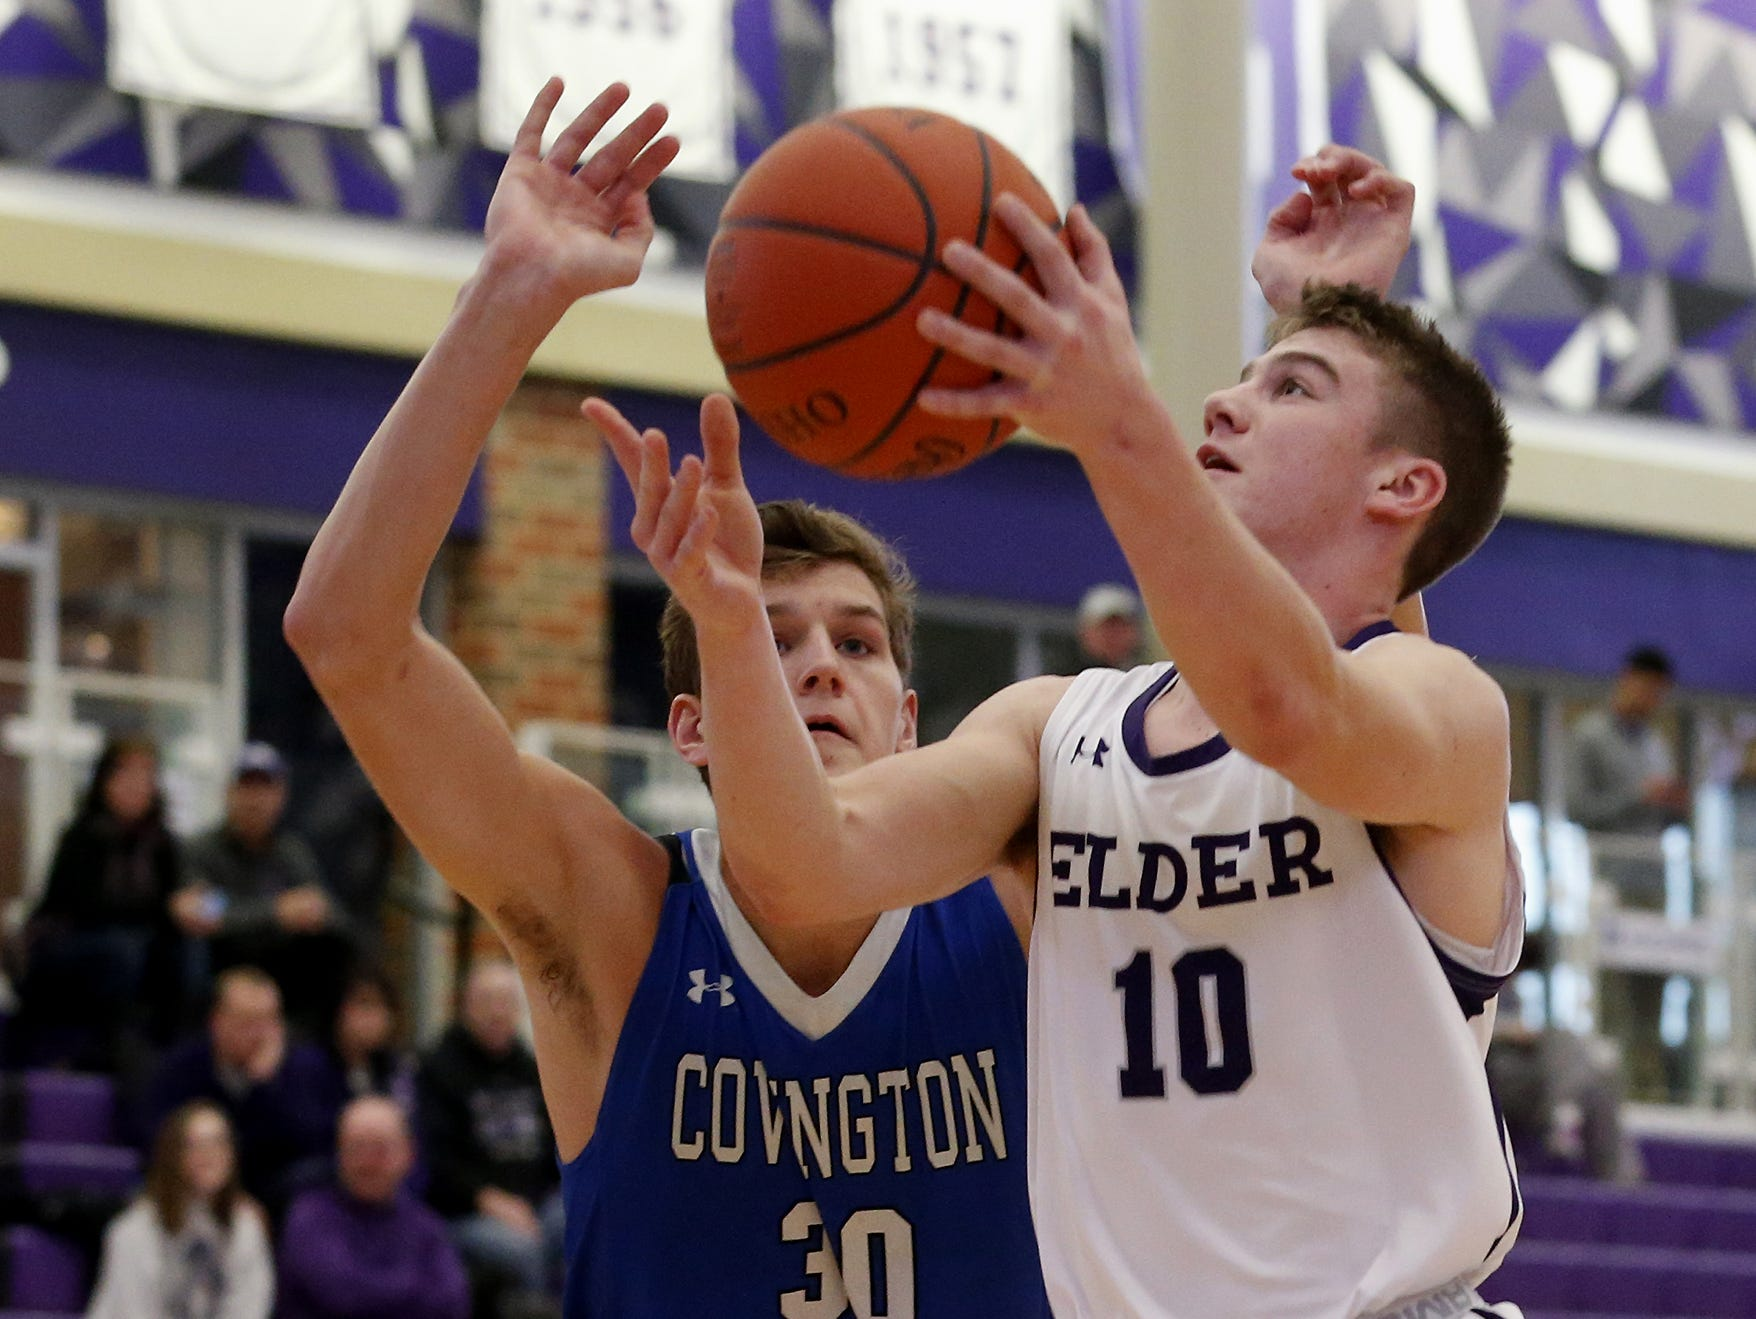 Elder guard Matthew Luebbe goes up to score against Covington Catholic forward Nick Thelen during the Midwest King Classic at Jerry Lucas Court in Wade E. Miller Arena in Middletown Saturday, Jan. 19, 2019.